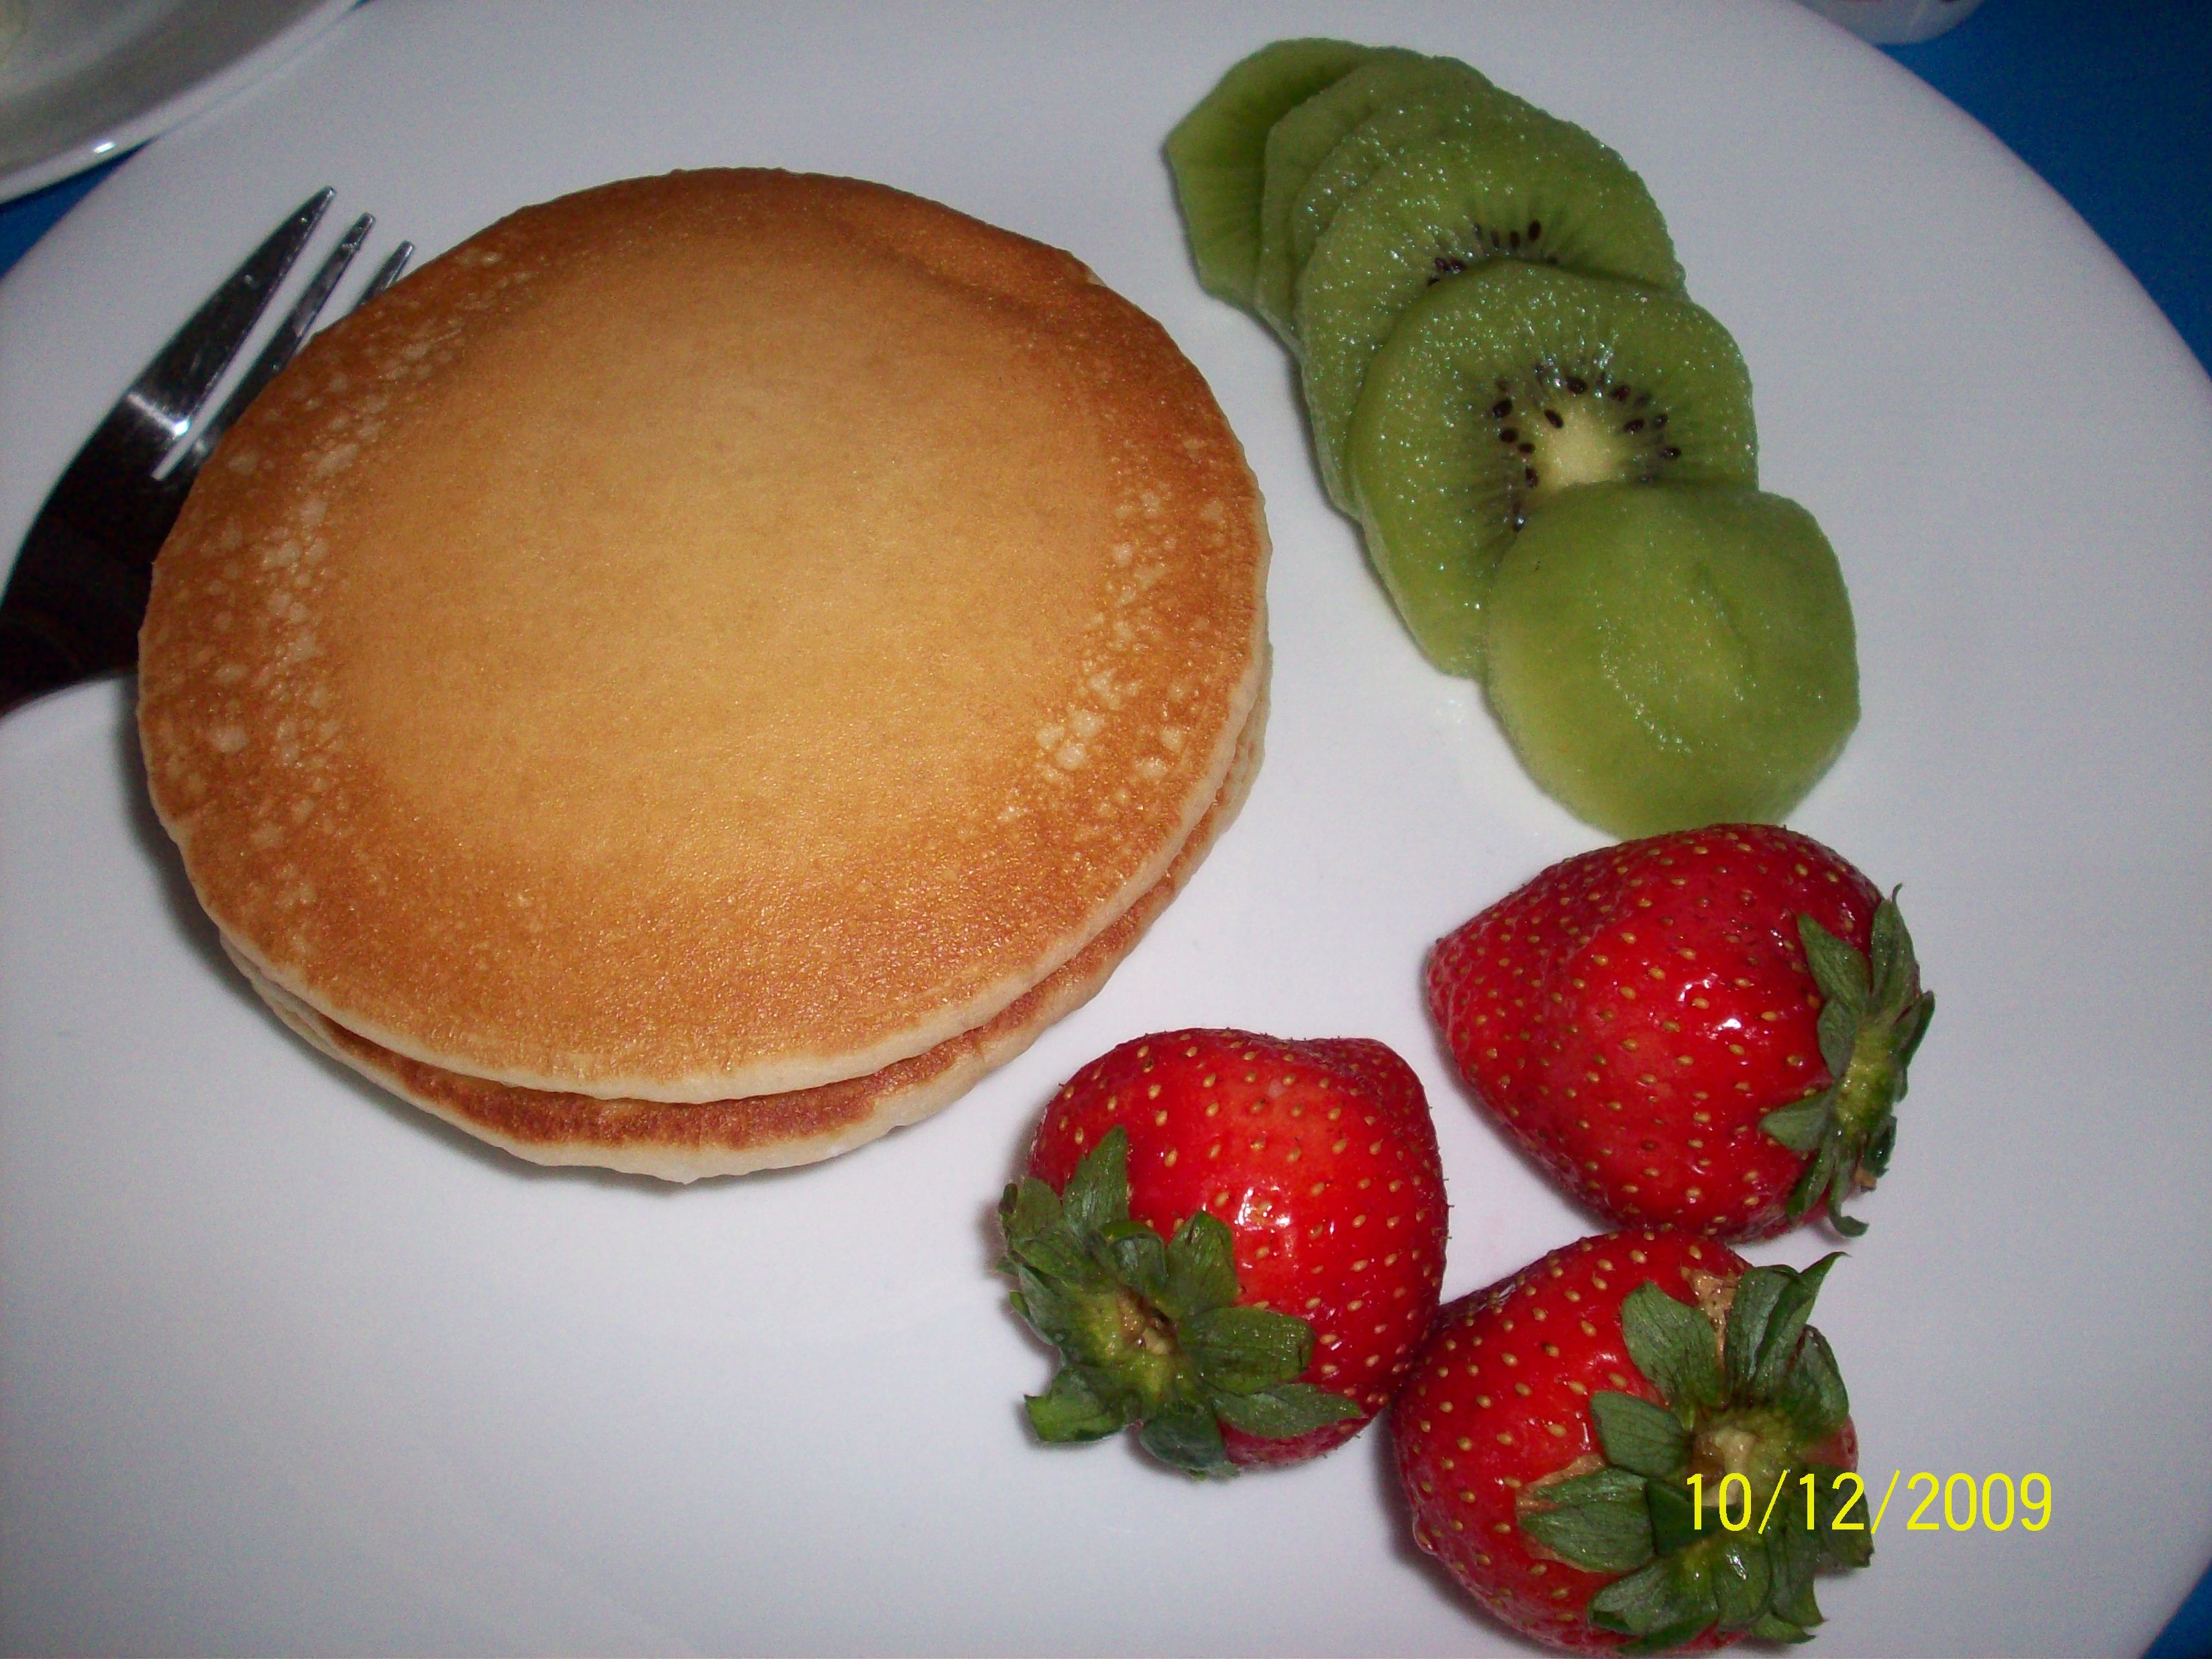 http://foodloader.net/cutie_2009-12-10_Pancakes__Strawberries_and_Kiwi.jpg